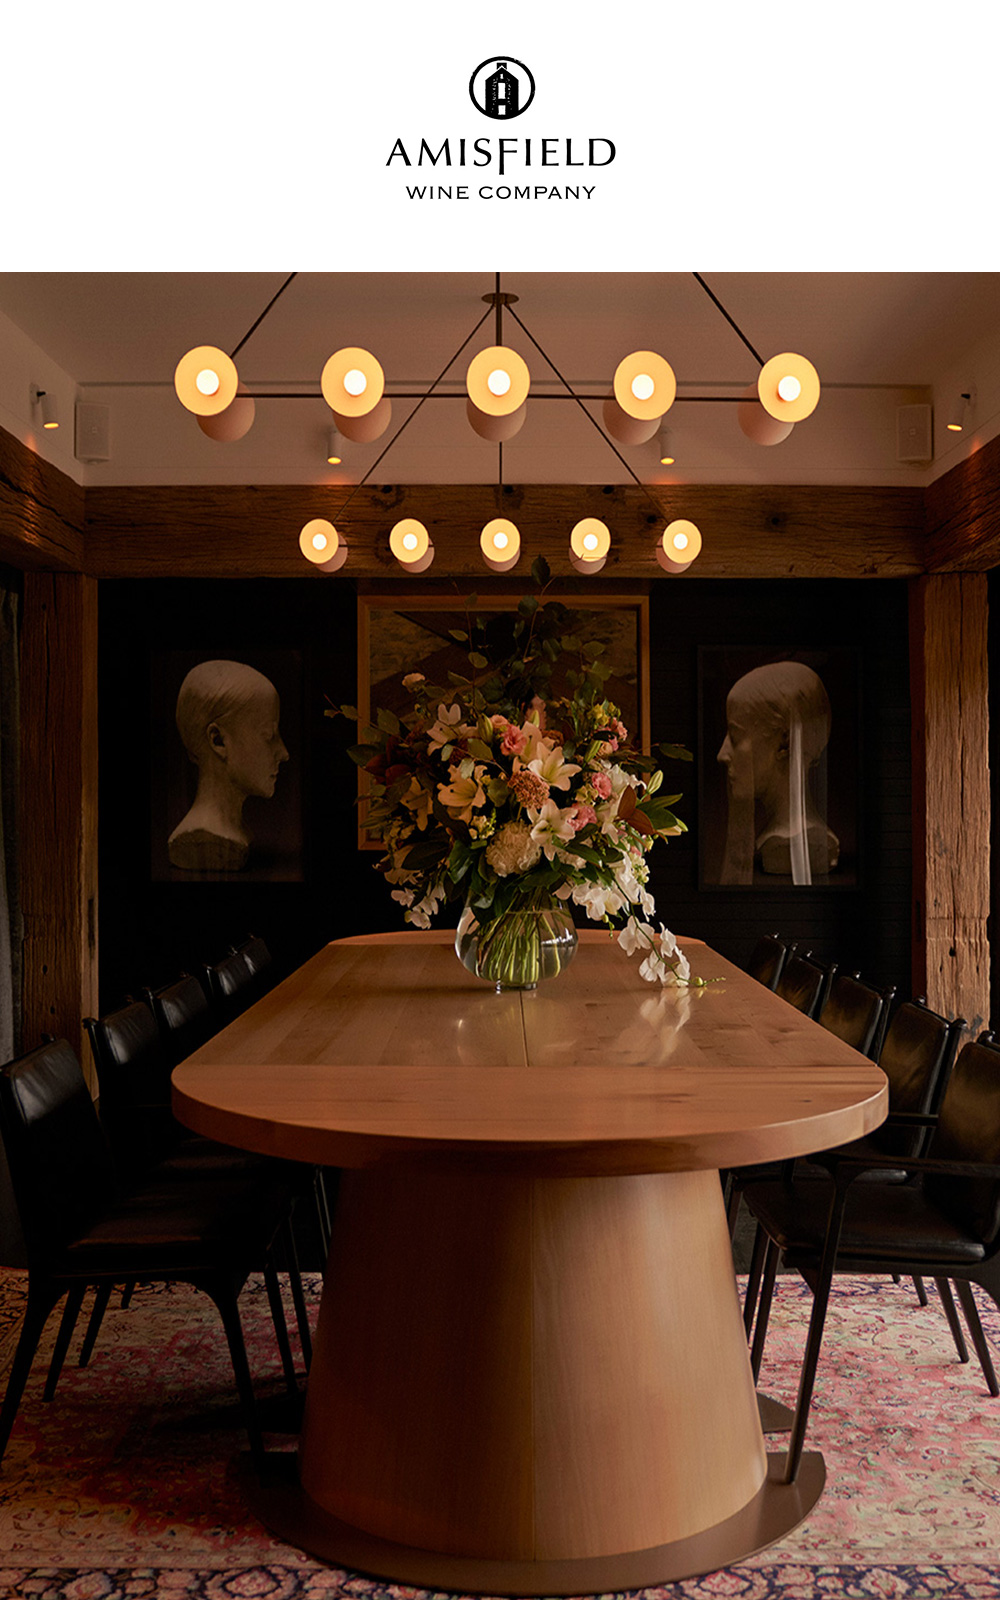 Treology-Amisfield-Private-Tasting-table.jpg